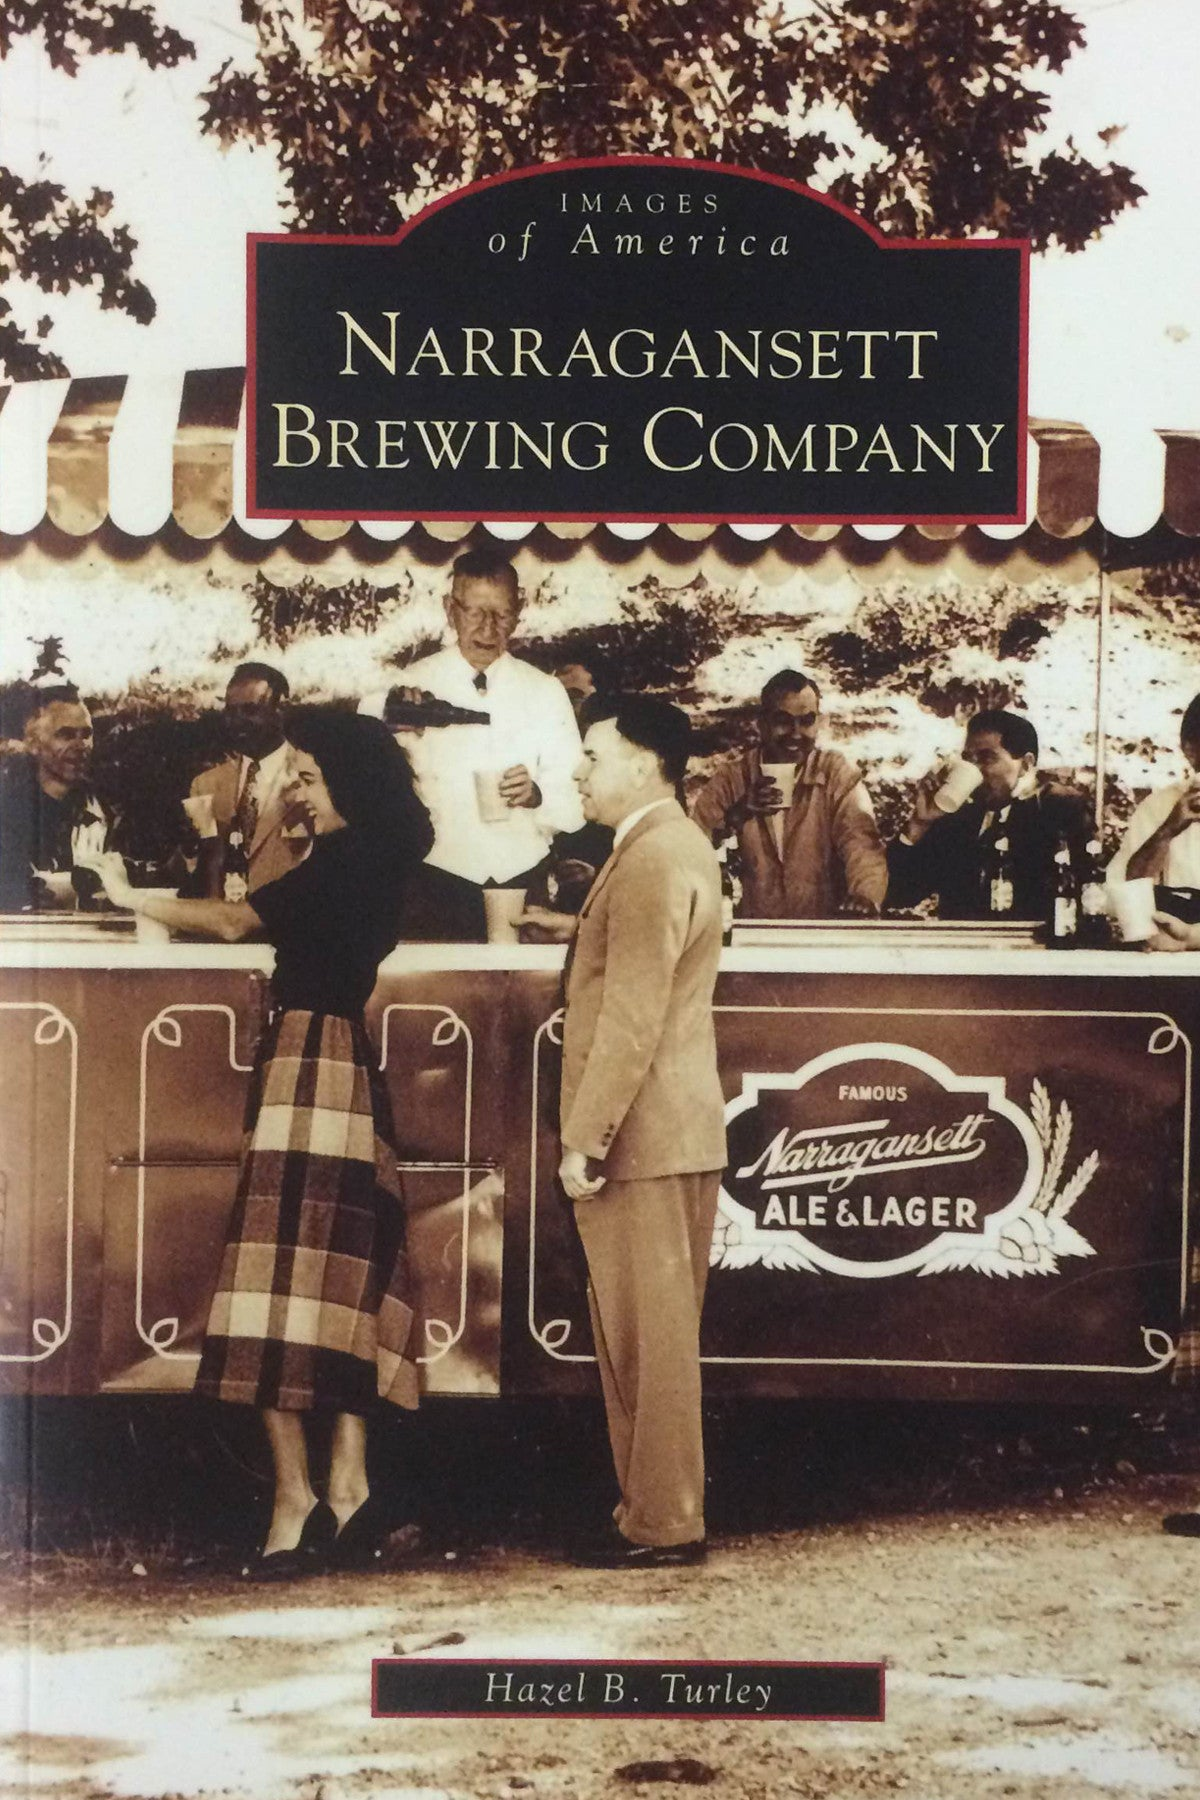 The History of Narragansett Brewing Co.